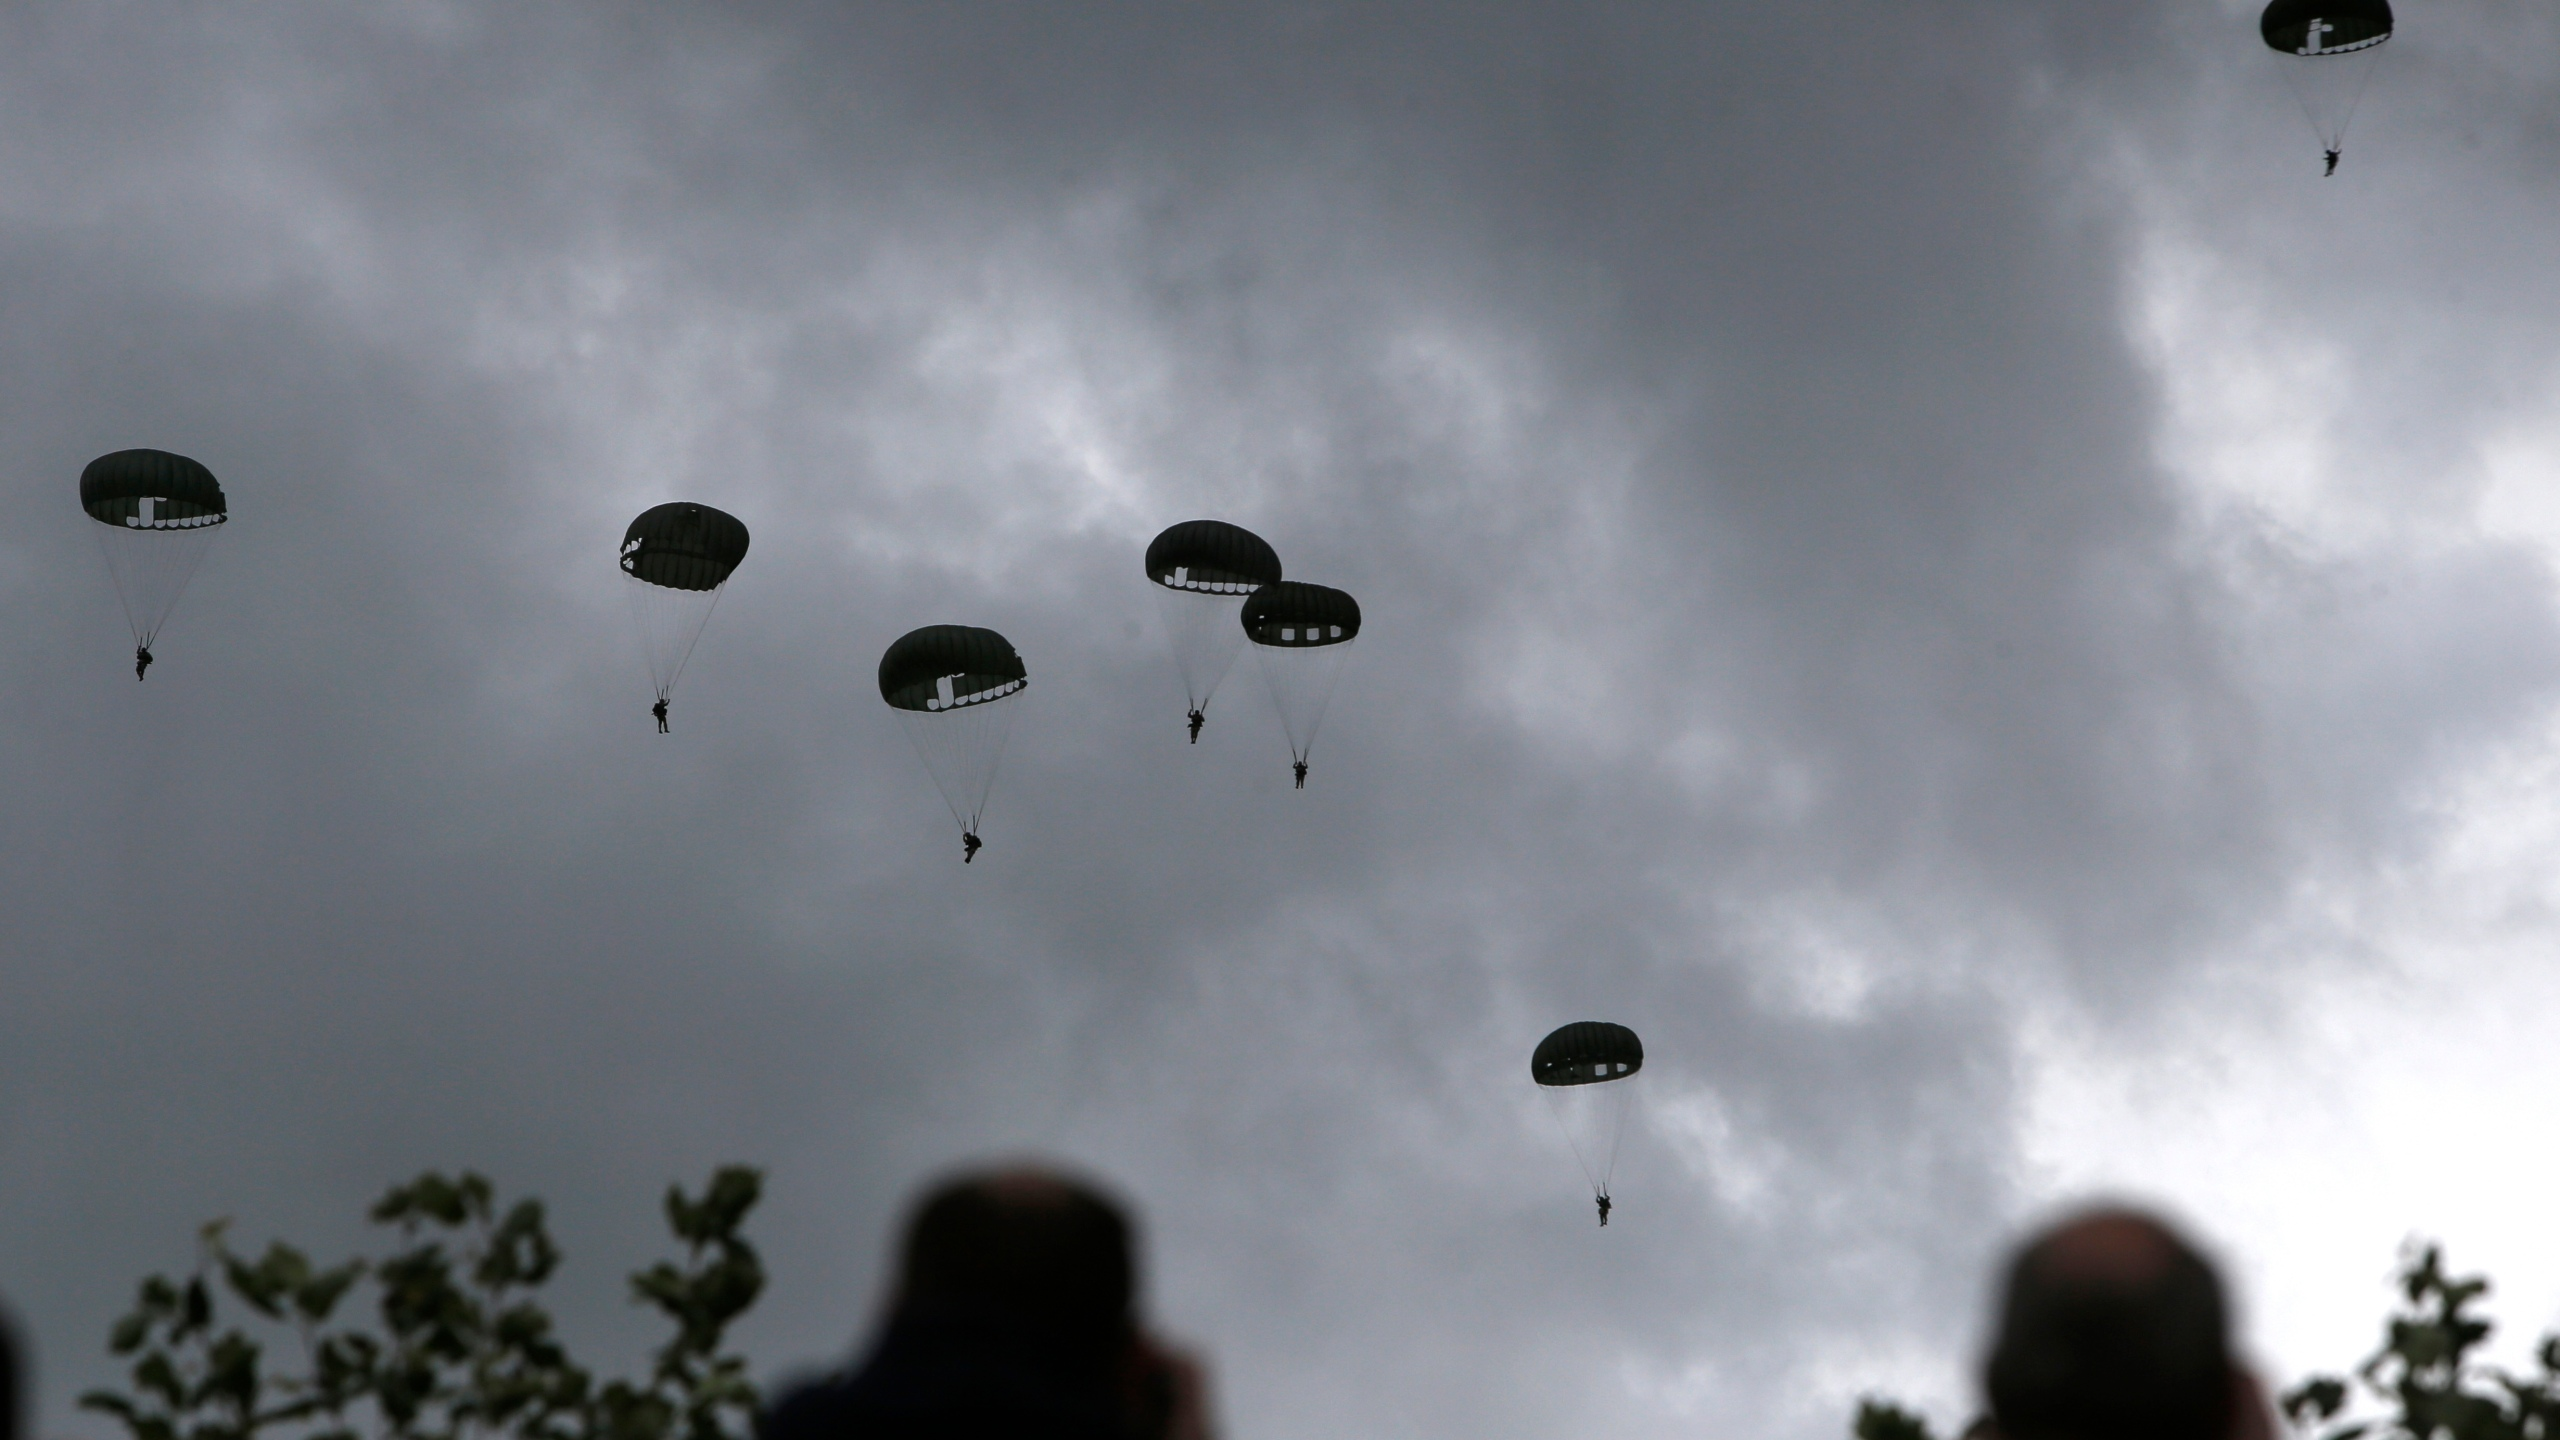 France_D-Day-Parachuting_Into_Normandy_73761-159532.jpg23150428